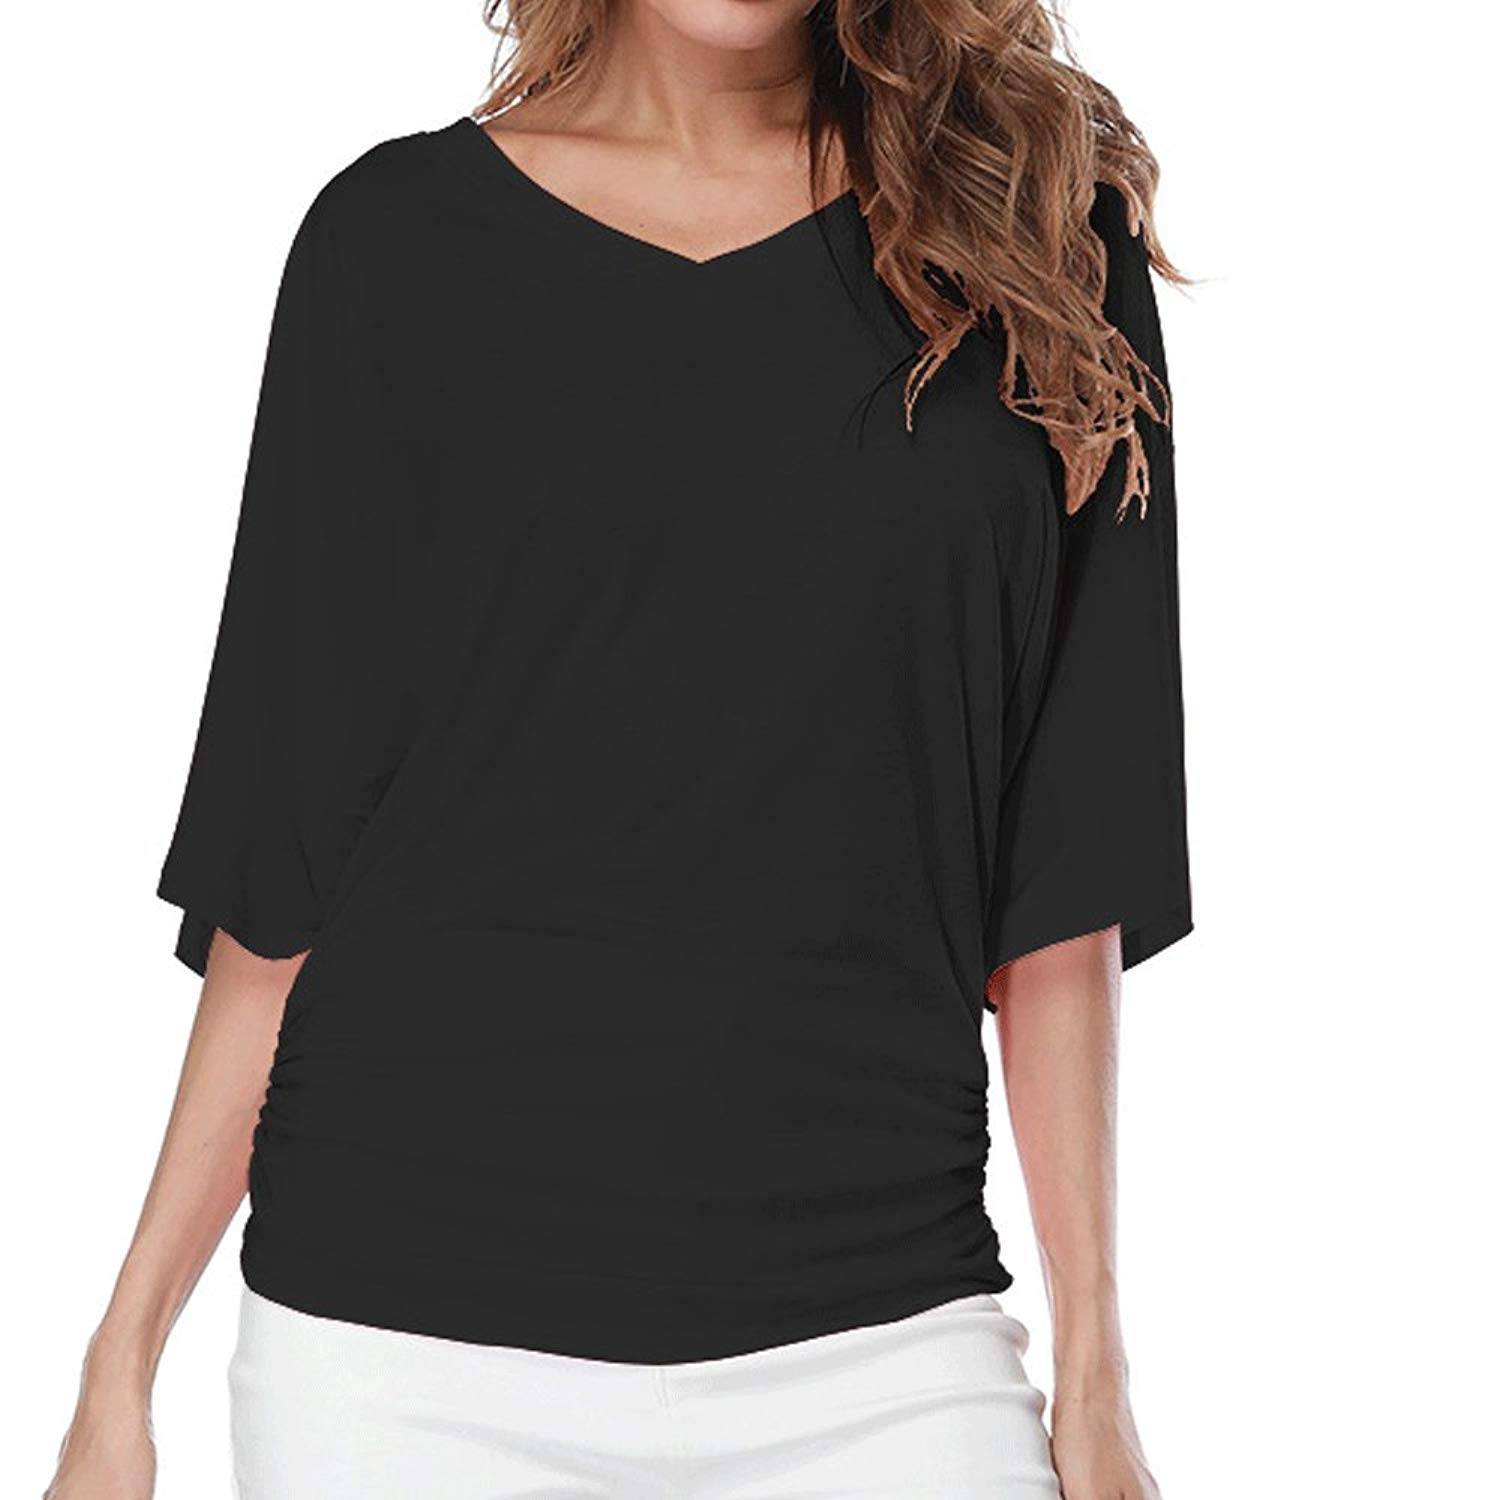 a5a11fddec28a2 Get Quotations · LINGMIN Women Plus Size V Neck Loose Fitting T-Shirt Tops  Solid Short Sleeves Dolman